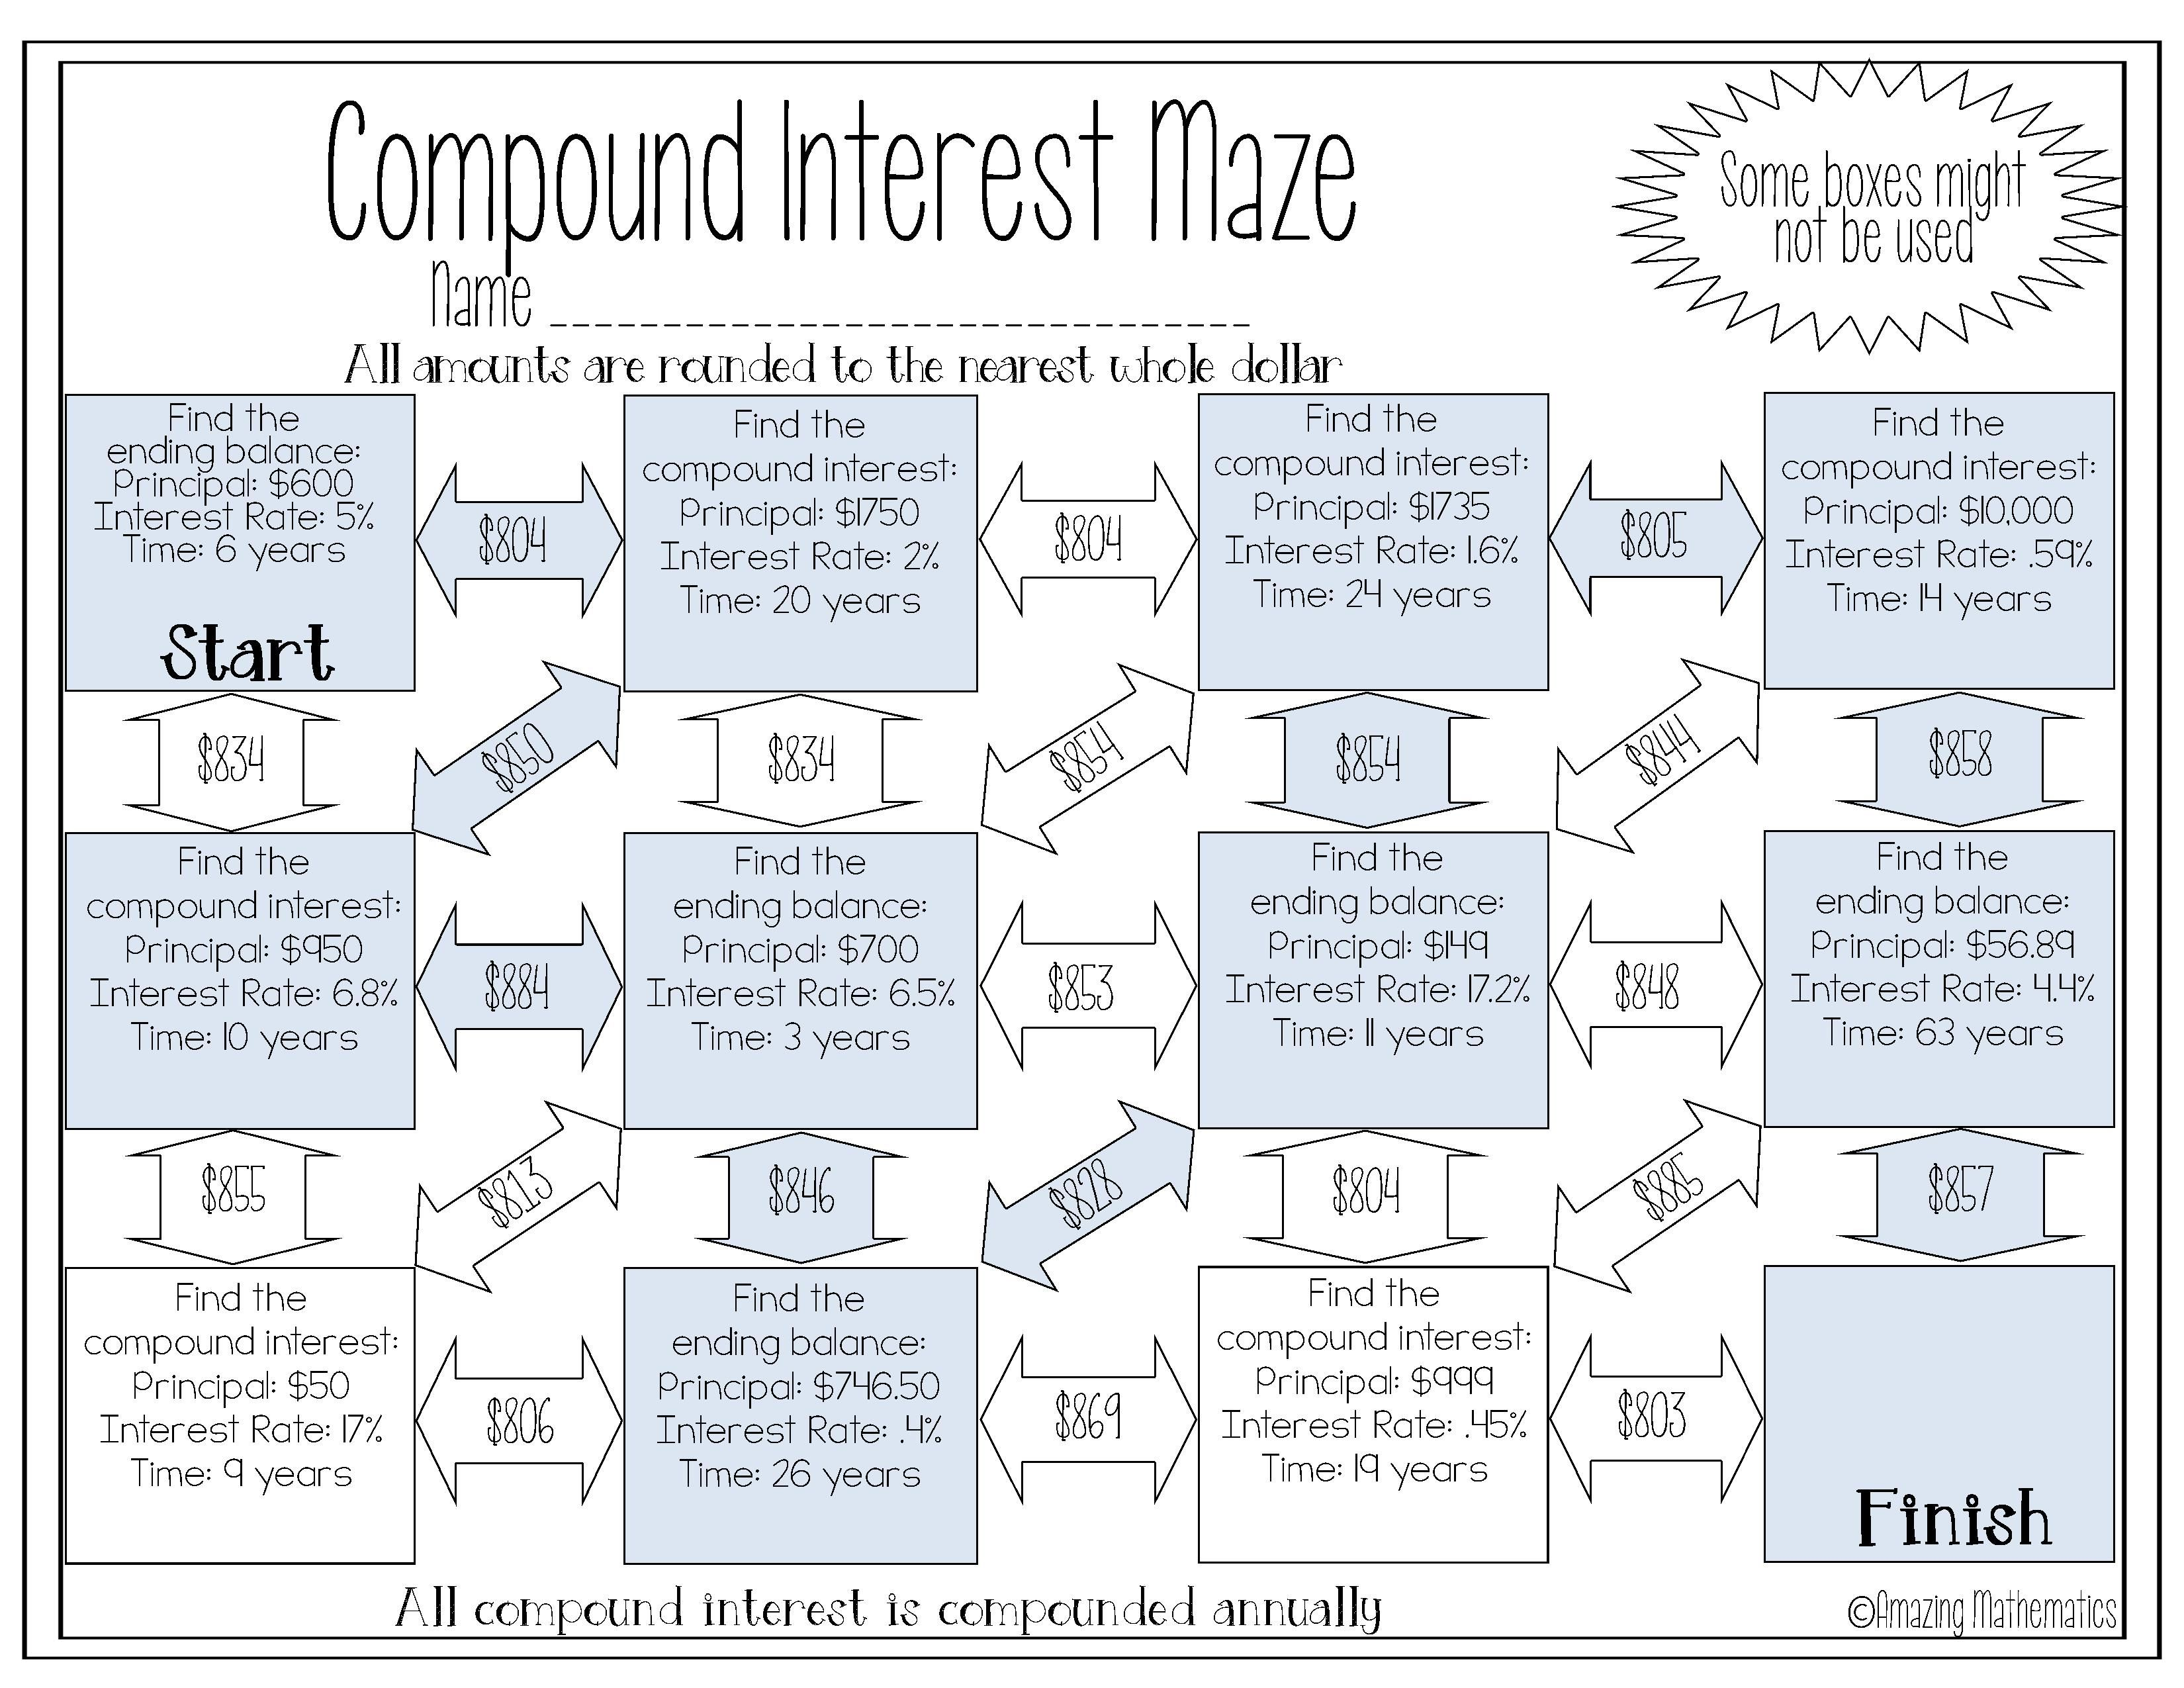 Compound Interest Maze